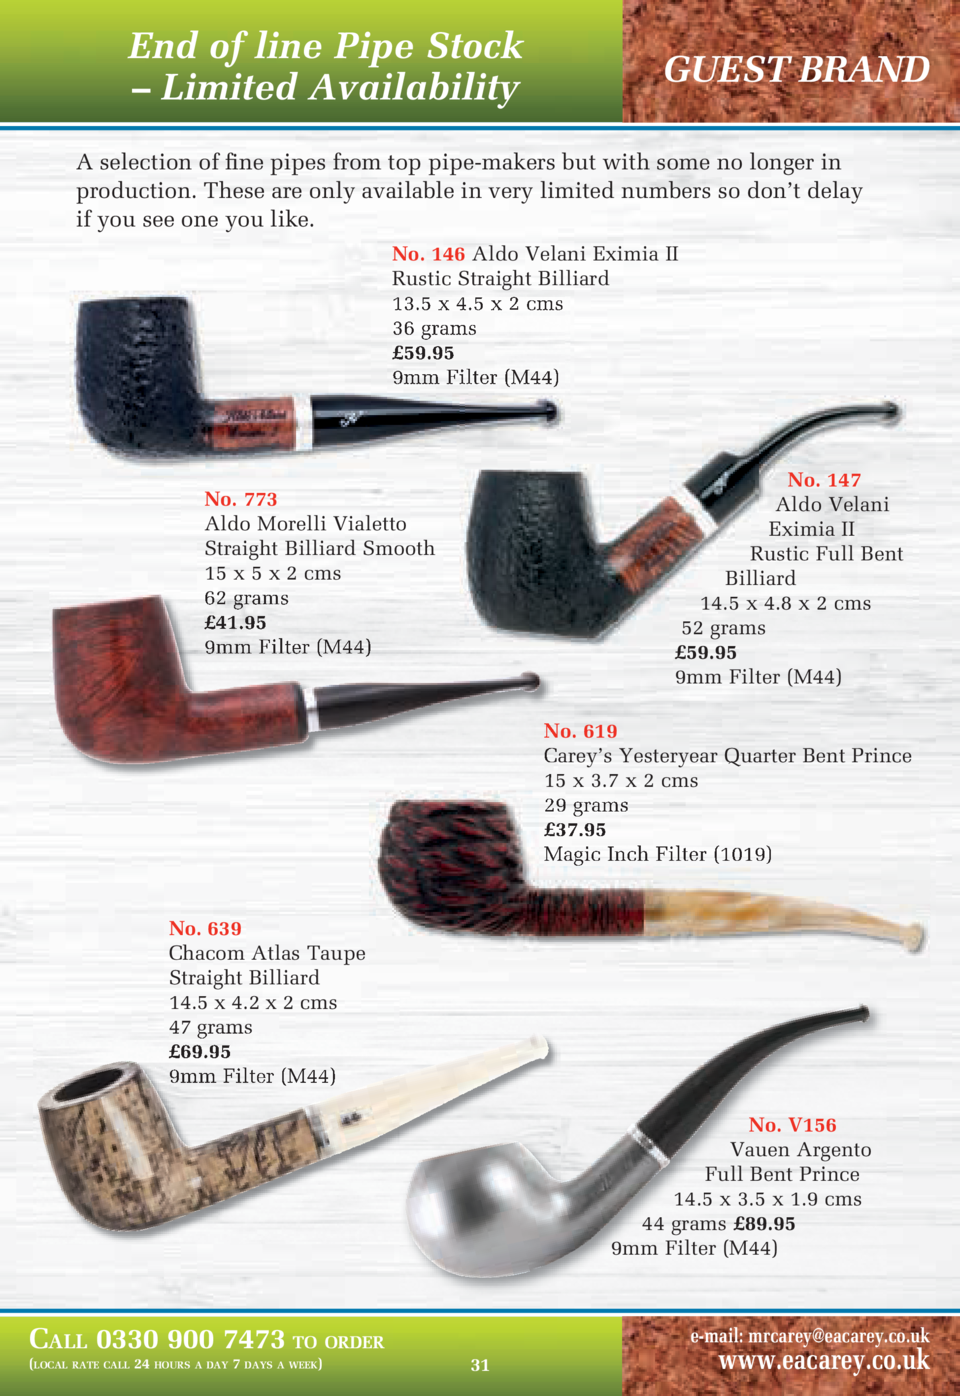 End of line Pipe Stock     Limited Availability  GUEST BRAND  A selection of fine pipes from top pipe-makers but with some...